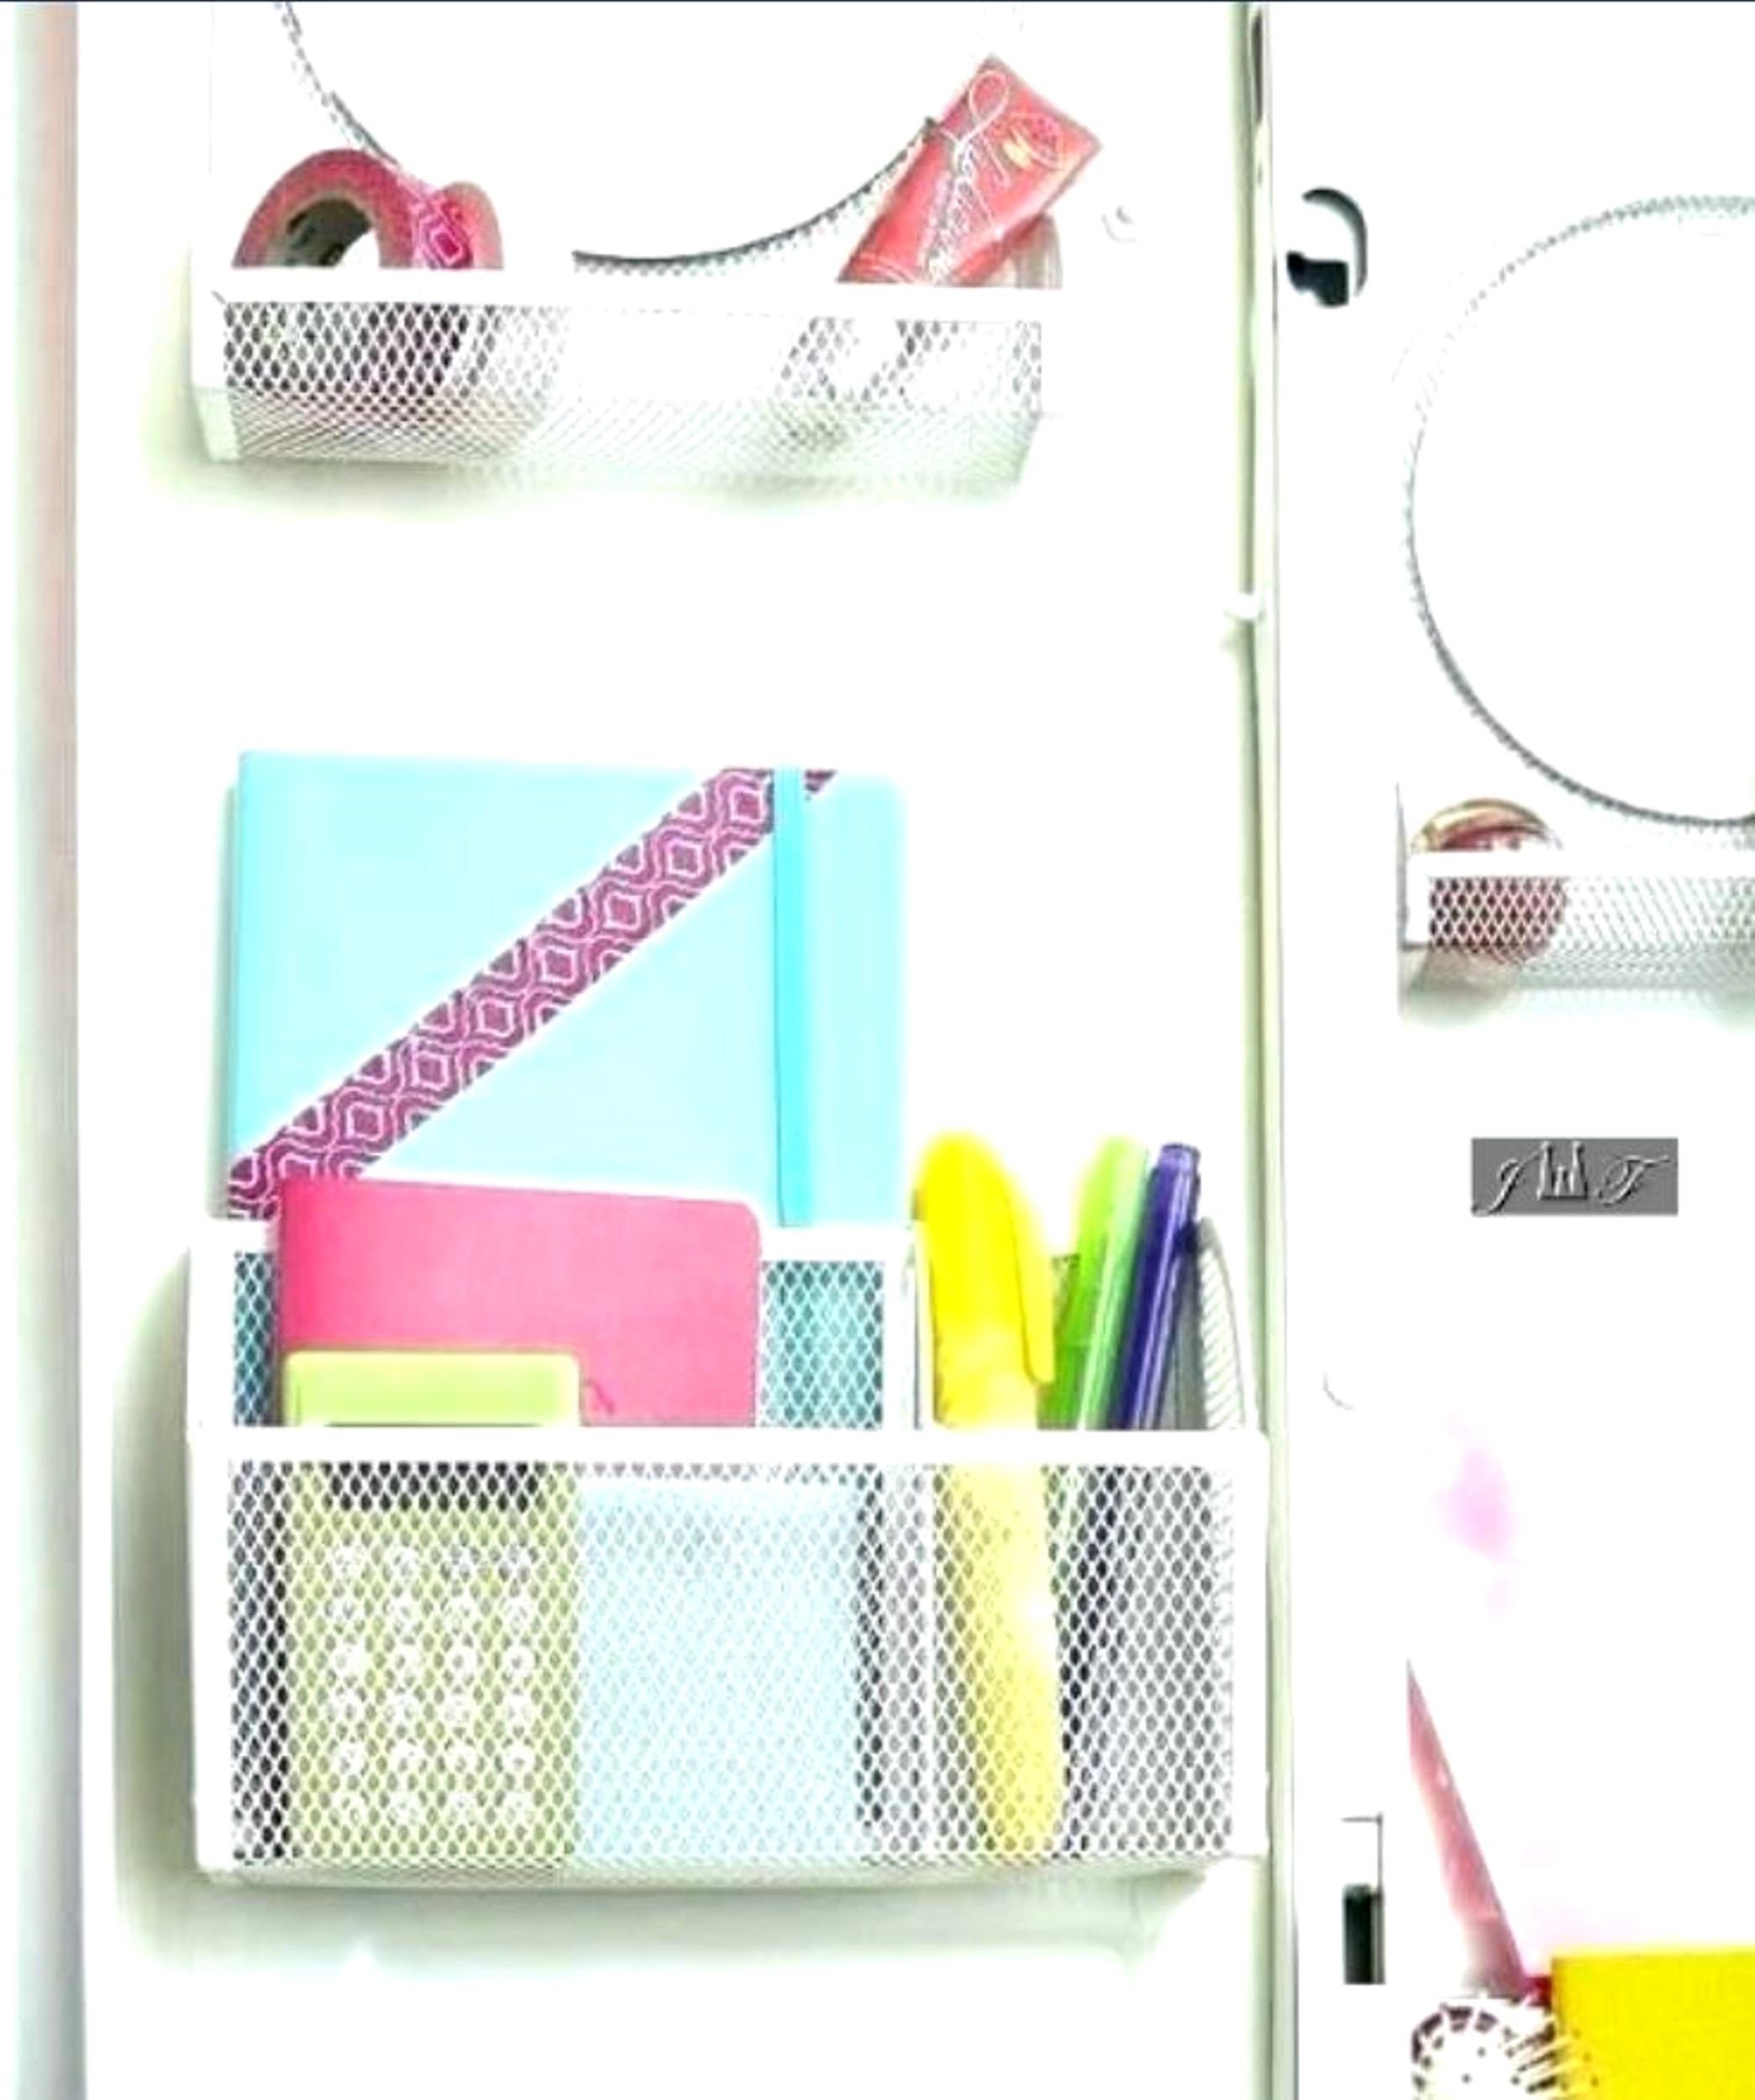 Wire Mesh Magnetic Locker Caddy, School-Office-Home Supply Organizer Desk Tray, Accessory. Keep Your Locker Organized. (Pink) by JEWELS FASHION (Image #3)